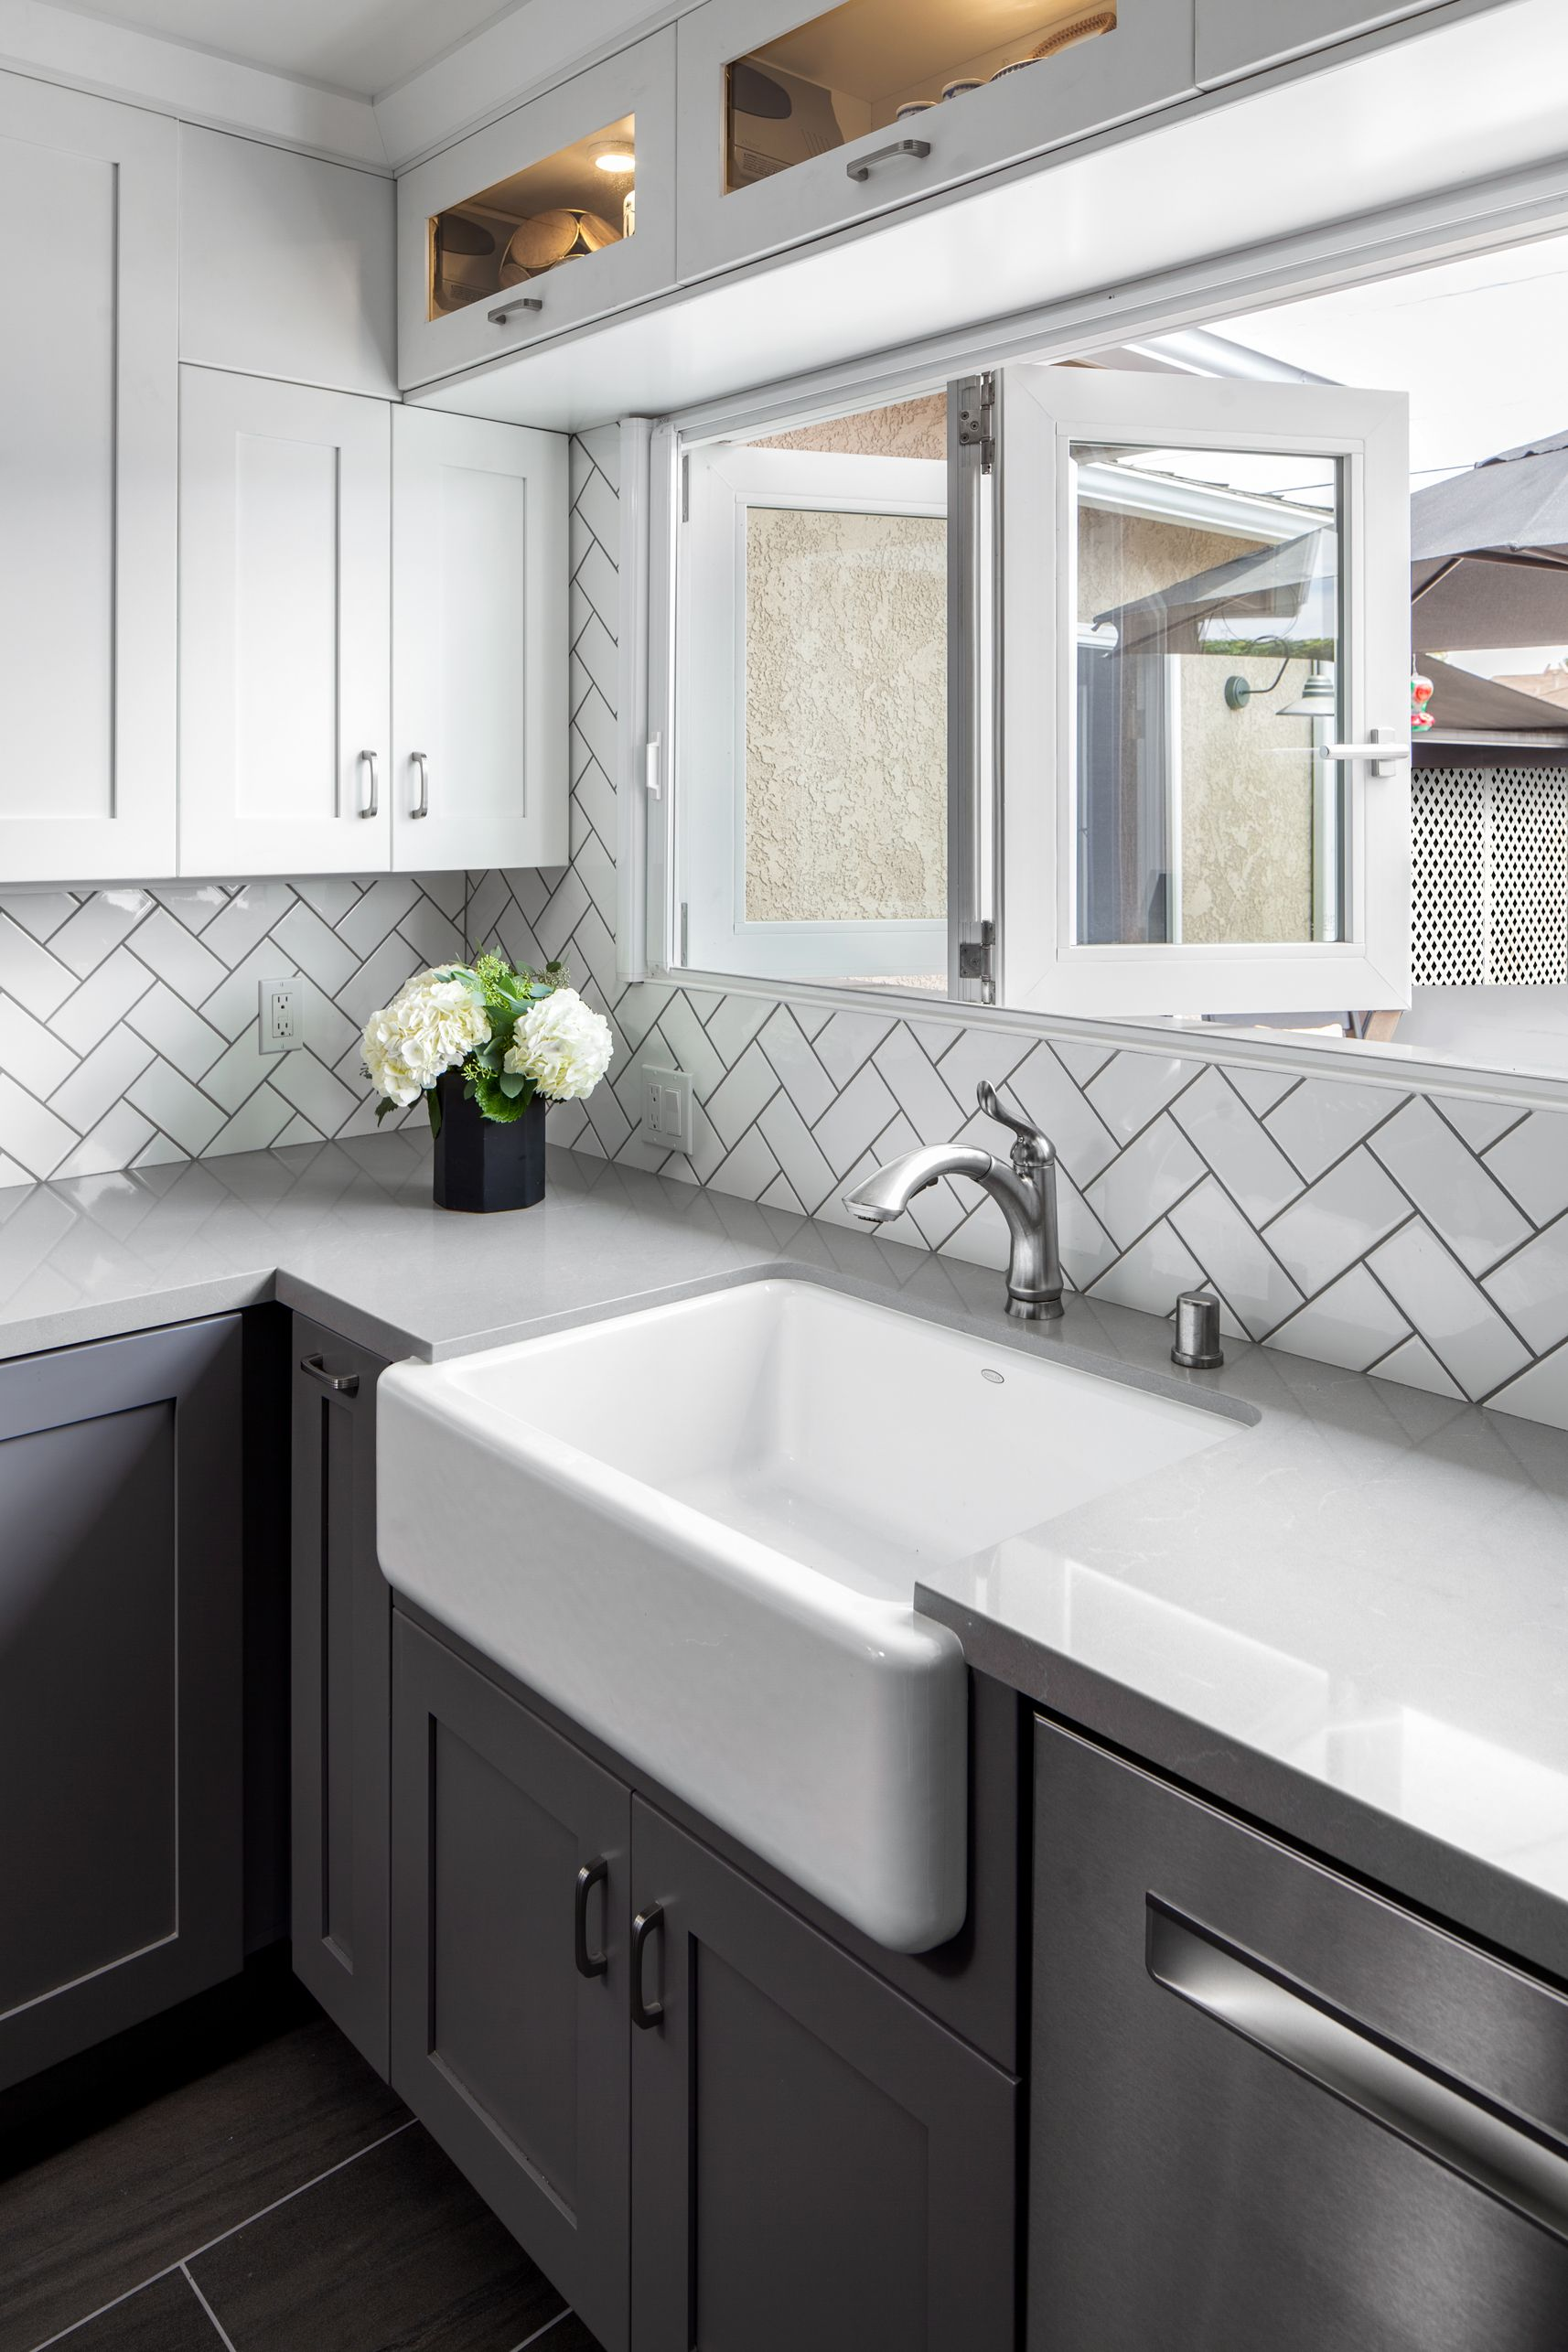 Remodeled Kitchen Complete With White Subway Tile Backsplash In Herringbone Pattern Gray And White Kitchen White Shaker Kitchen White Shaker Kitchen Cabinets